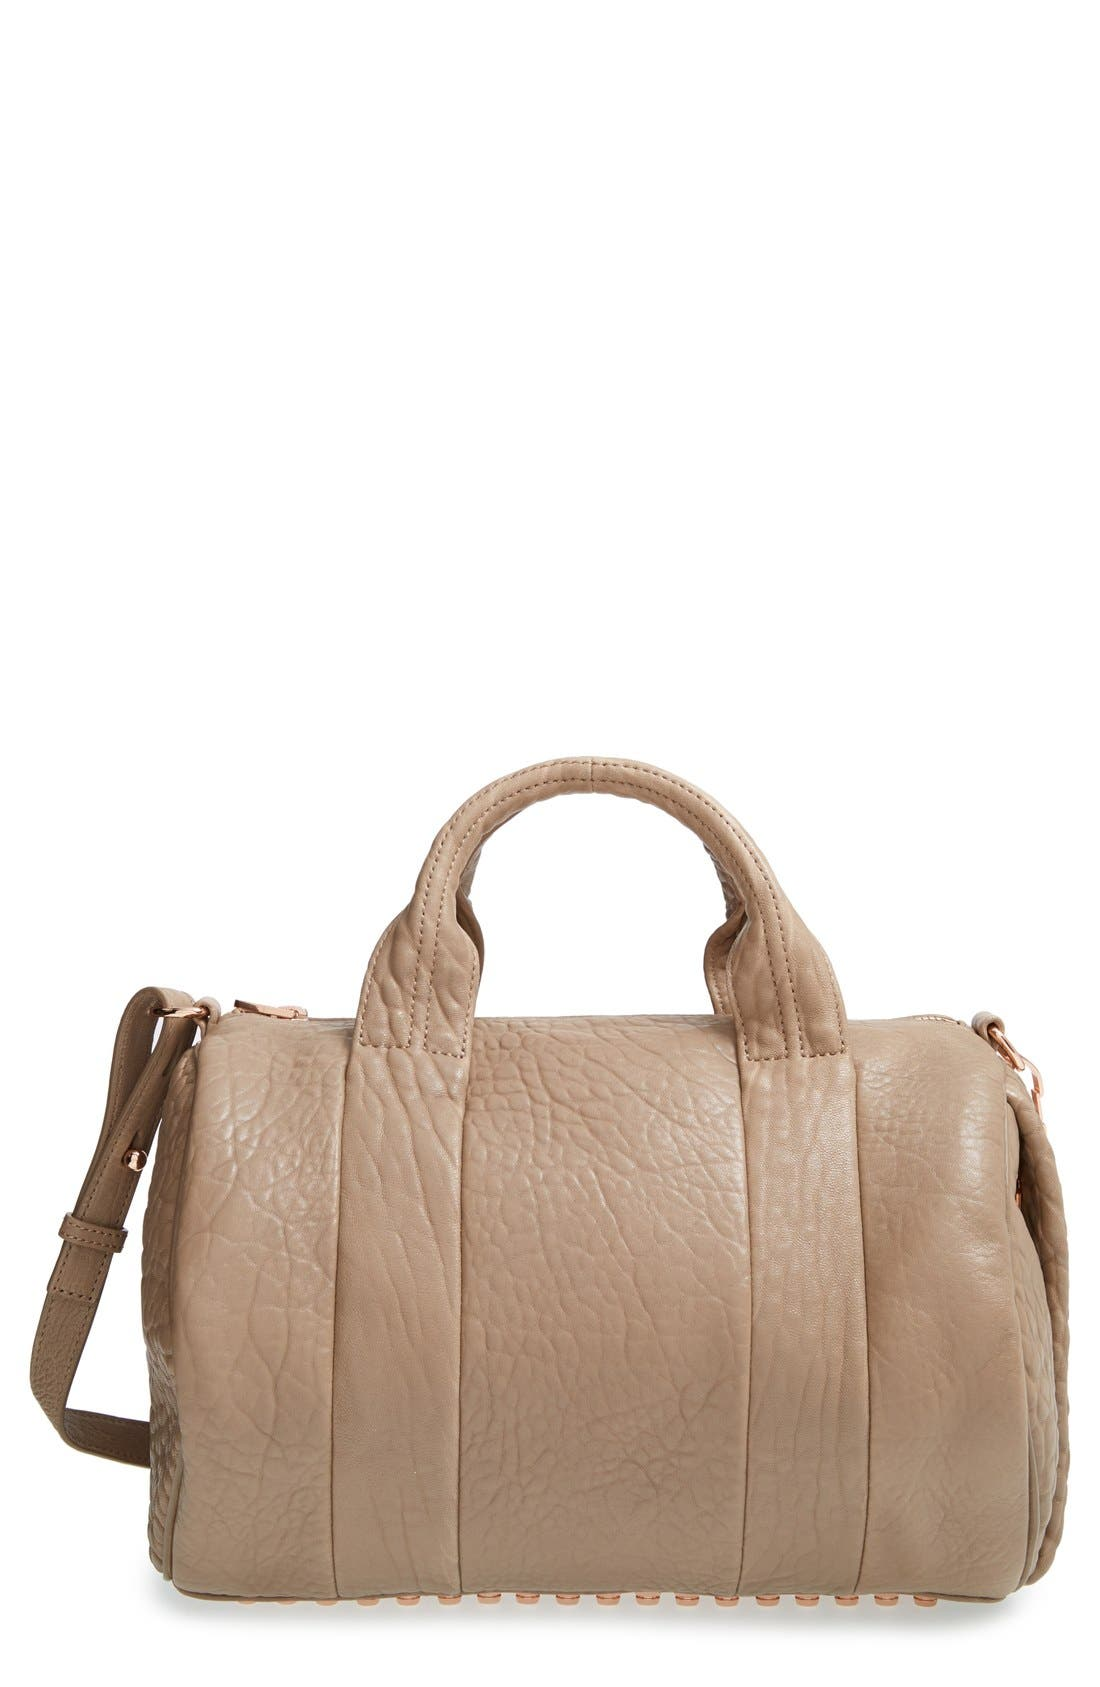 ALEXANDER WANG 'Rocco - Rose Gold' Leather Satchel, Main, color, 250